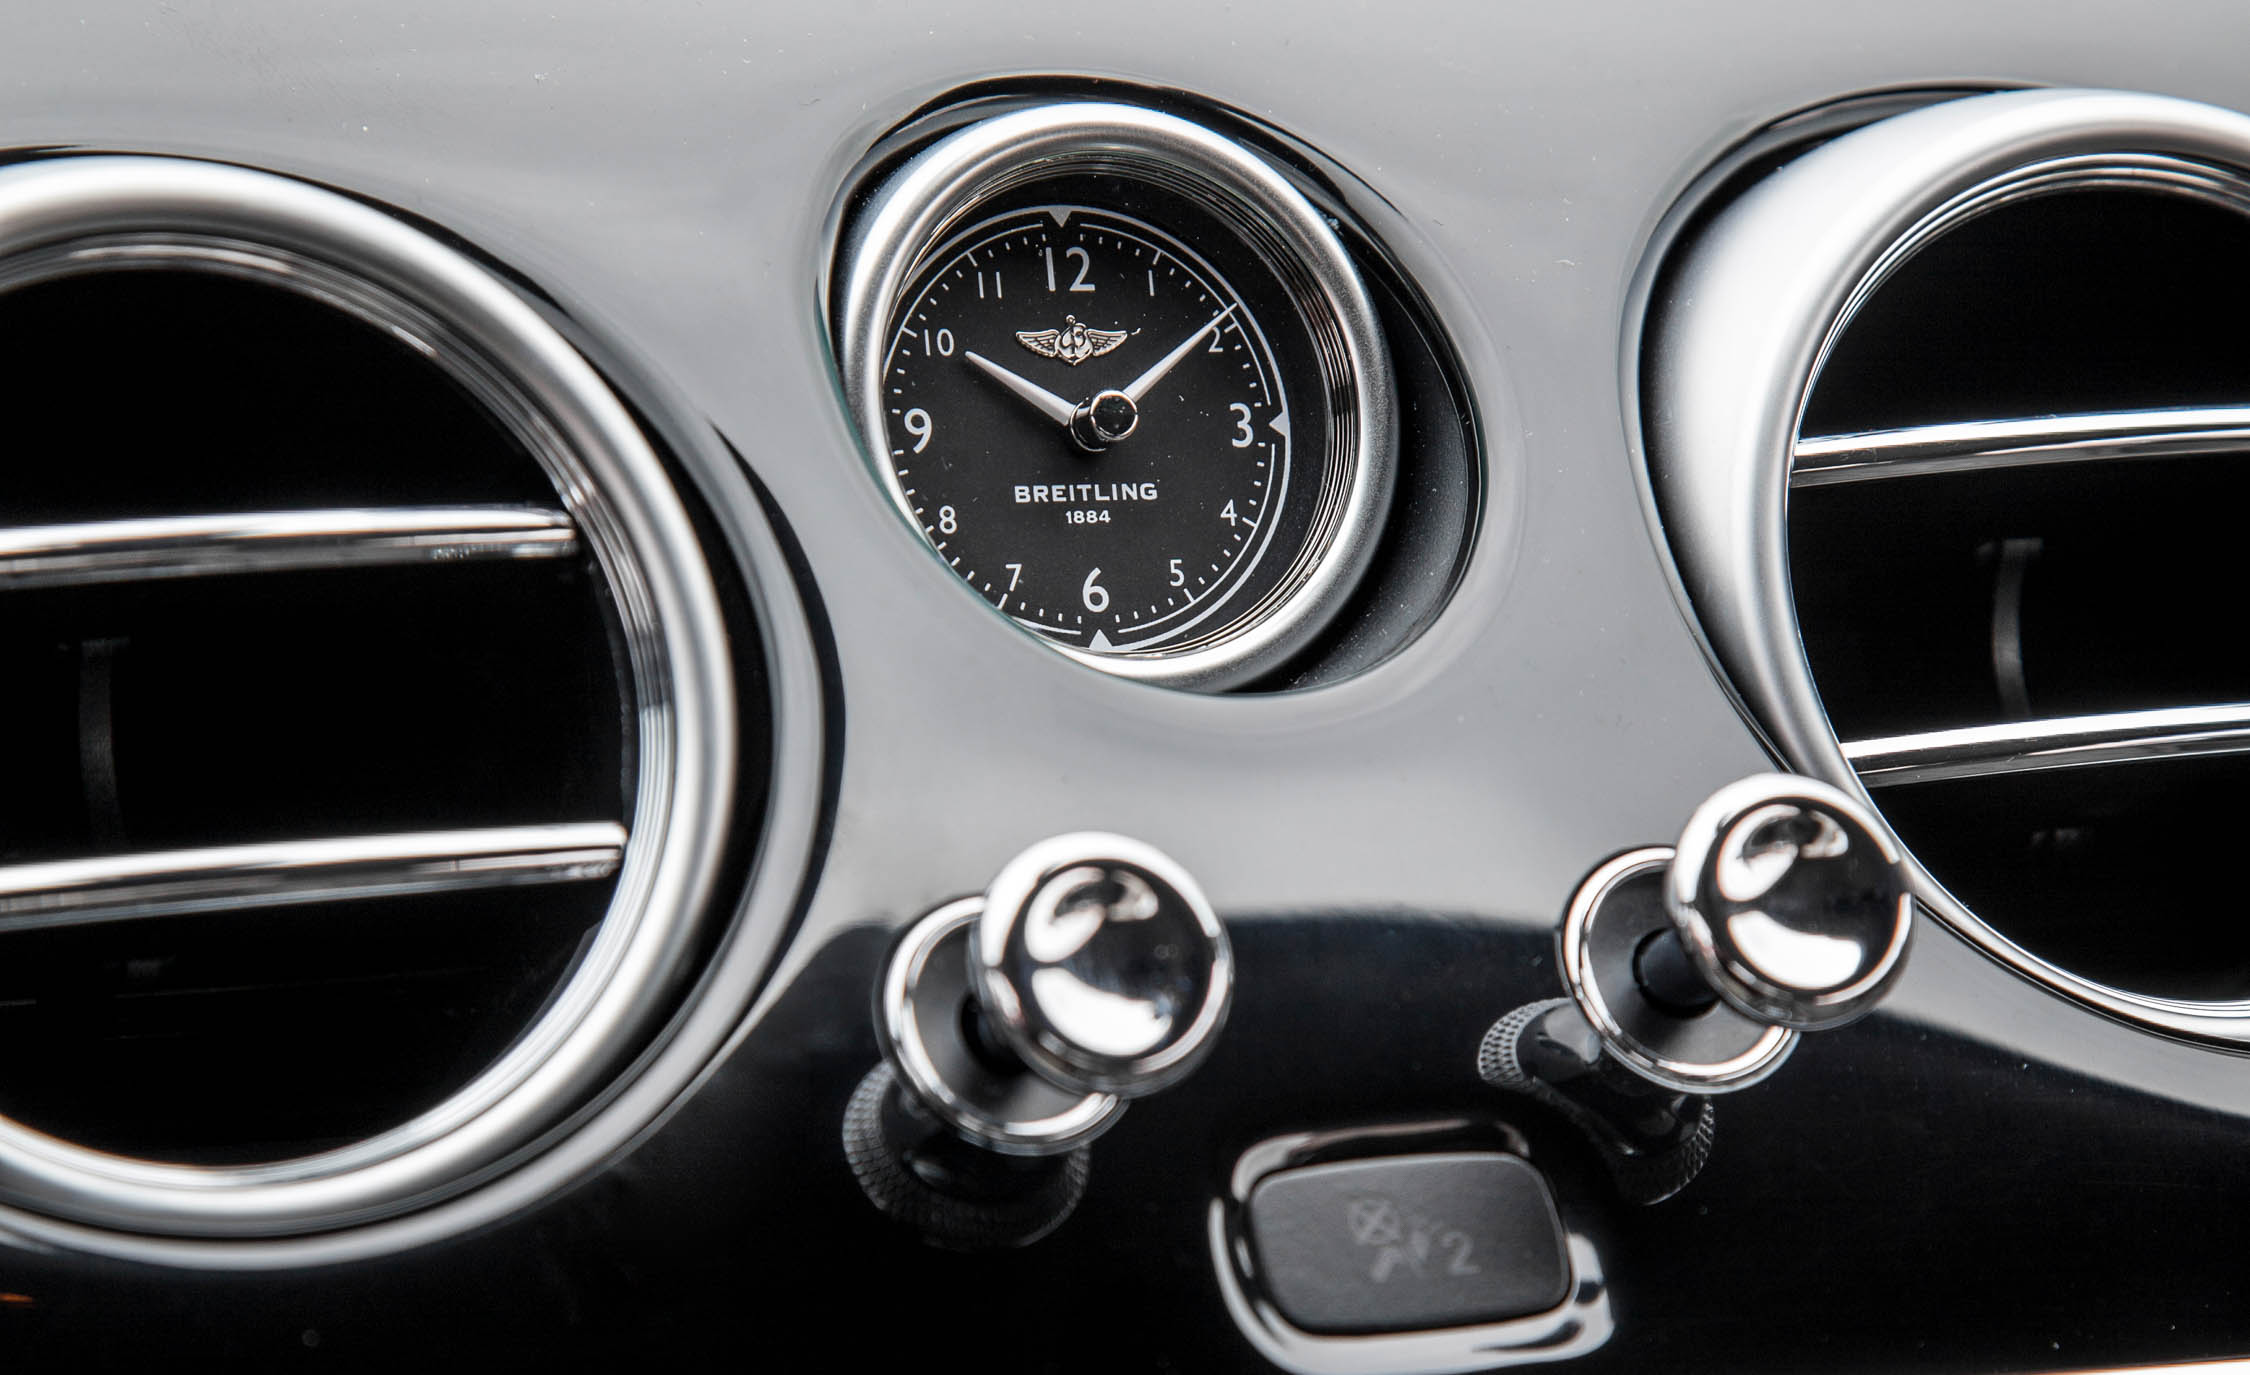 2018 Bentley Continental Supersports Interior View Dashboard Clock (View 6 of 66)